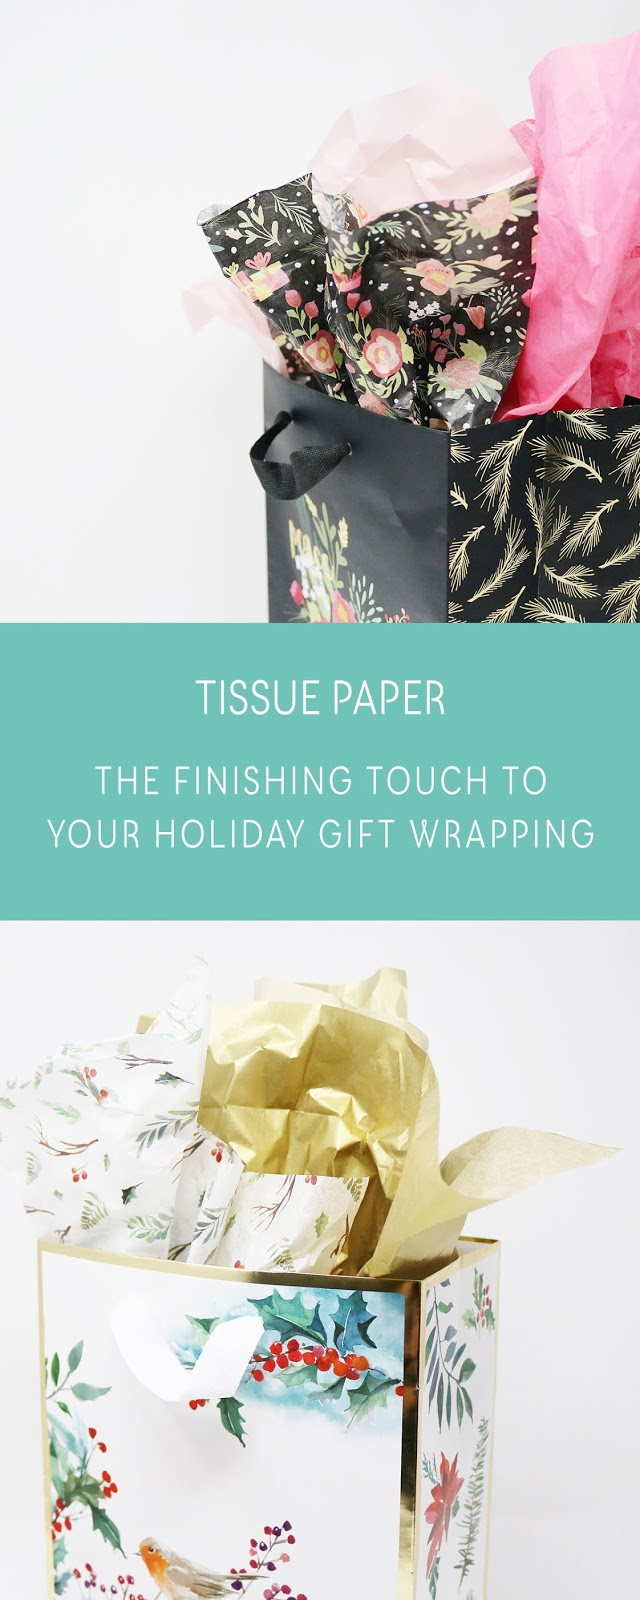 Holiday Gift Wrapping Inspiration - Tissue paper is the finishing touch!   creativebag.com